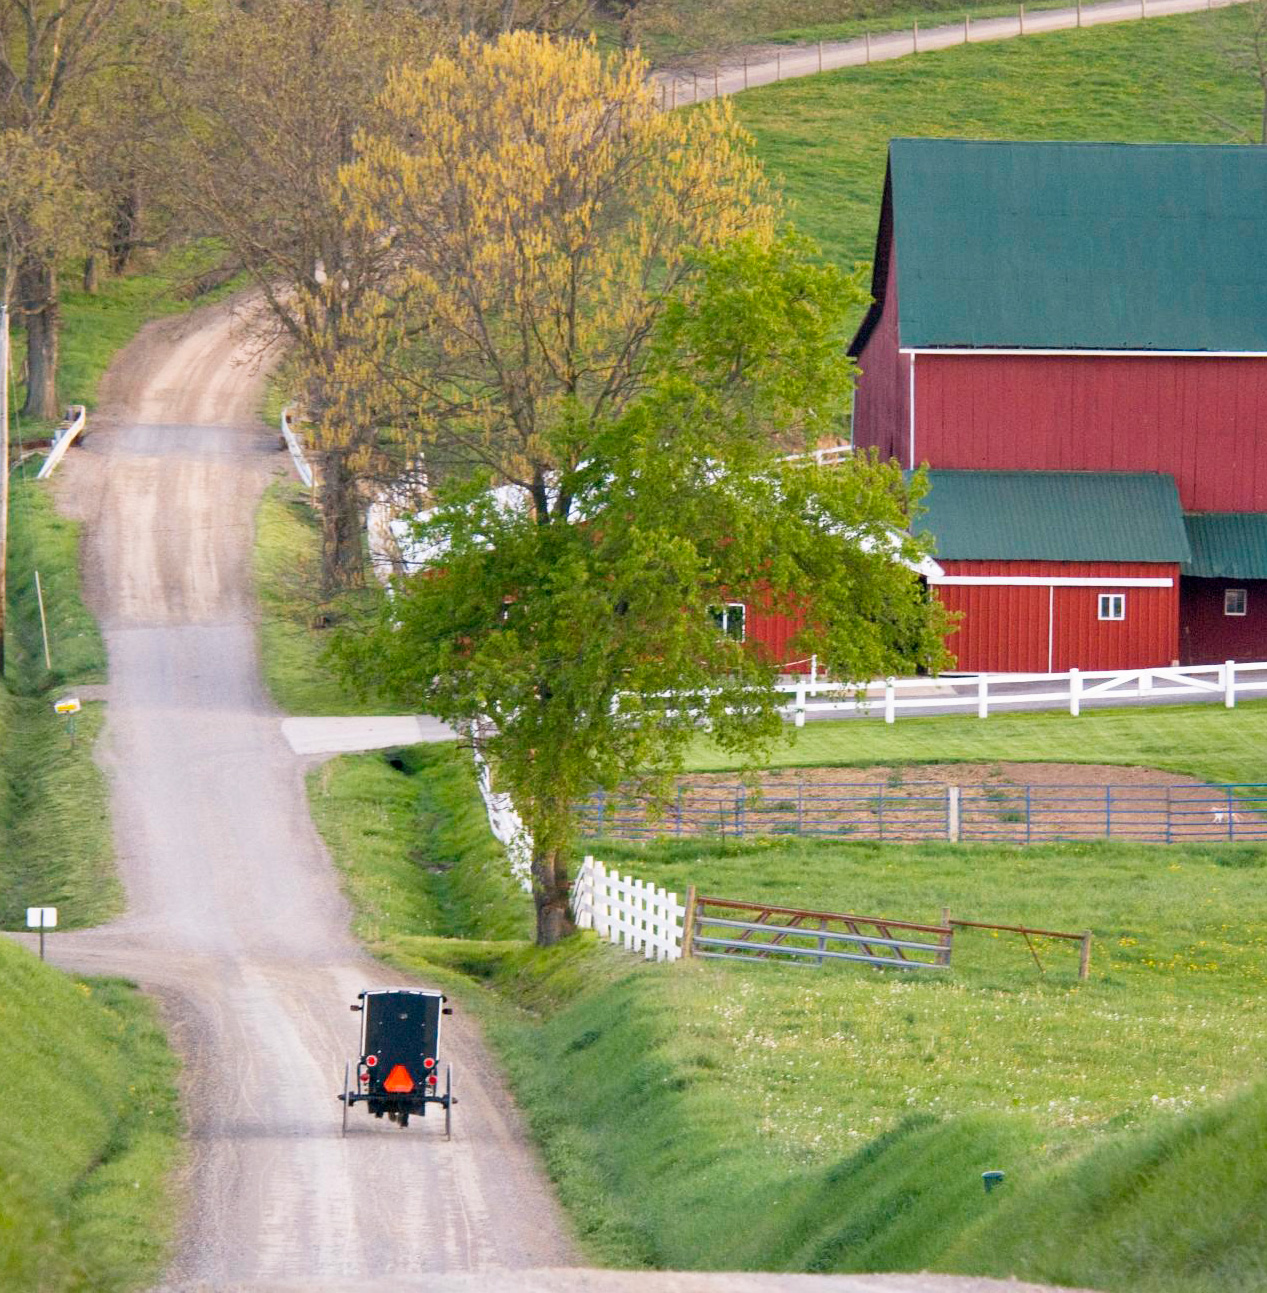 Amish Country, Indiana: 110 miles east of Chicago